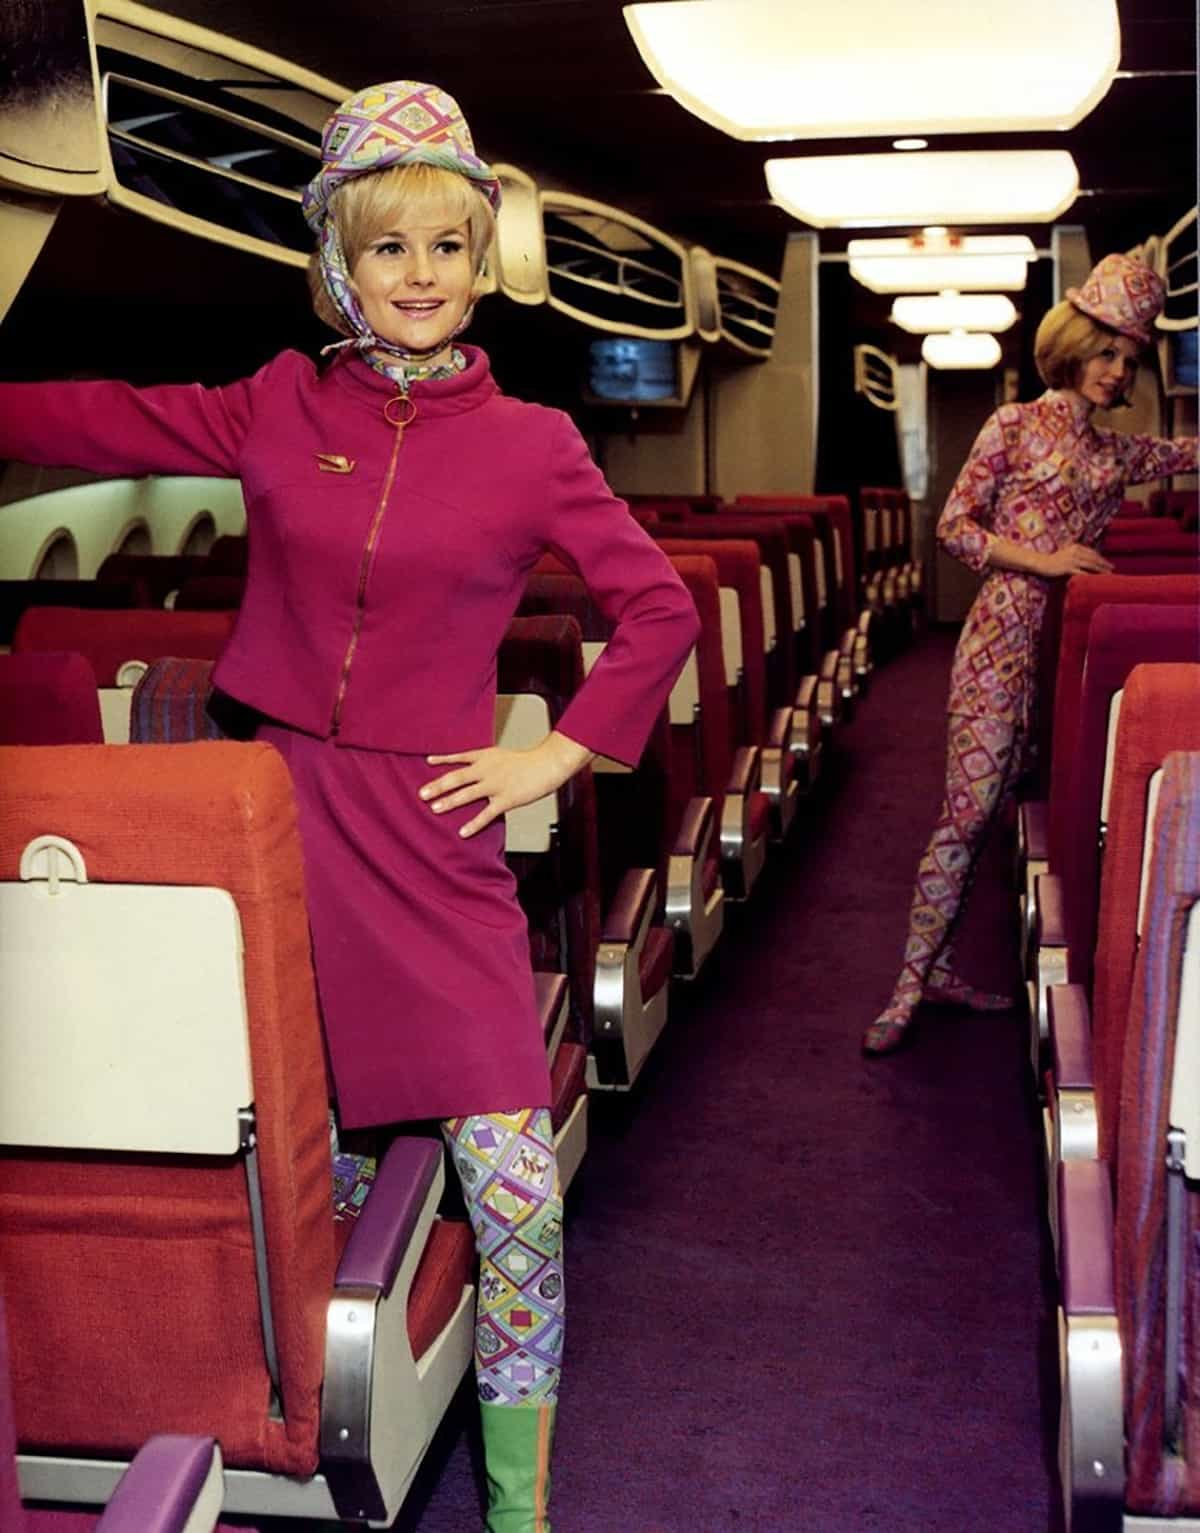 Pucci uniforms on Braniff, 1960s